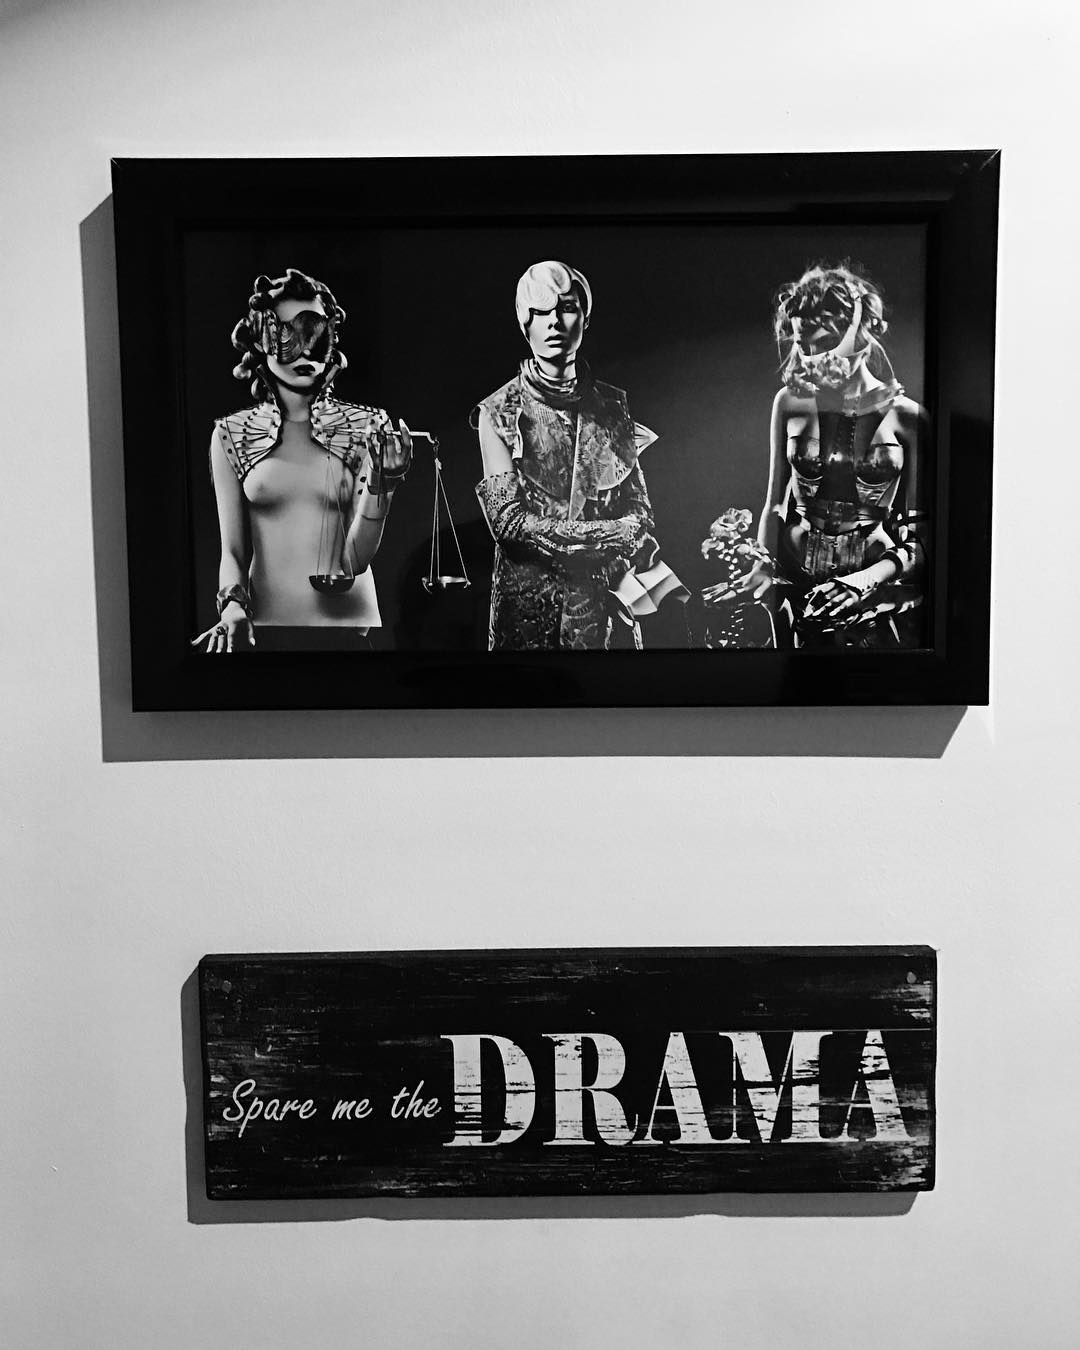 Some printed and framed images from editorial petrification dramamag morehellip